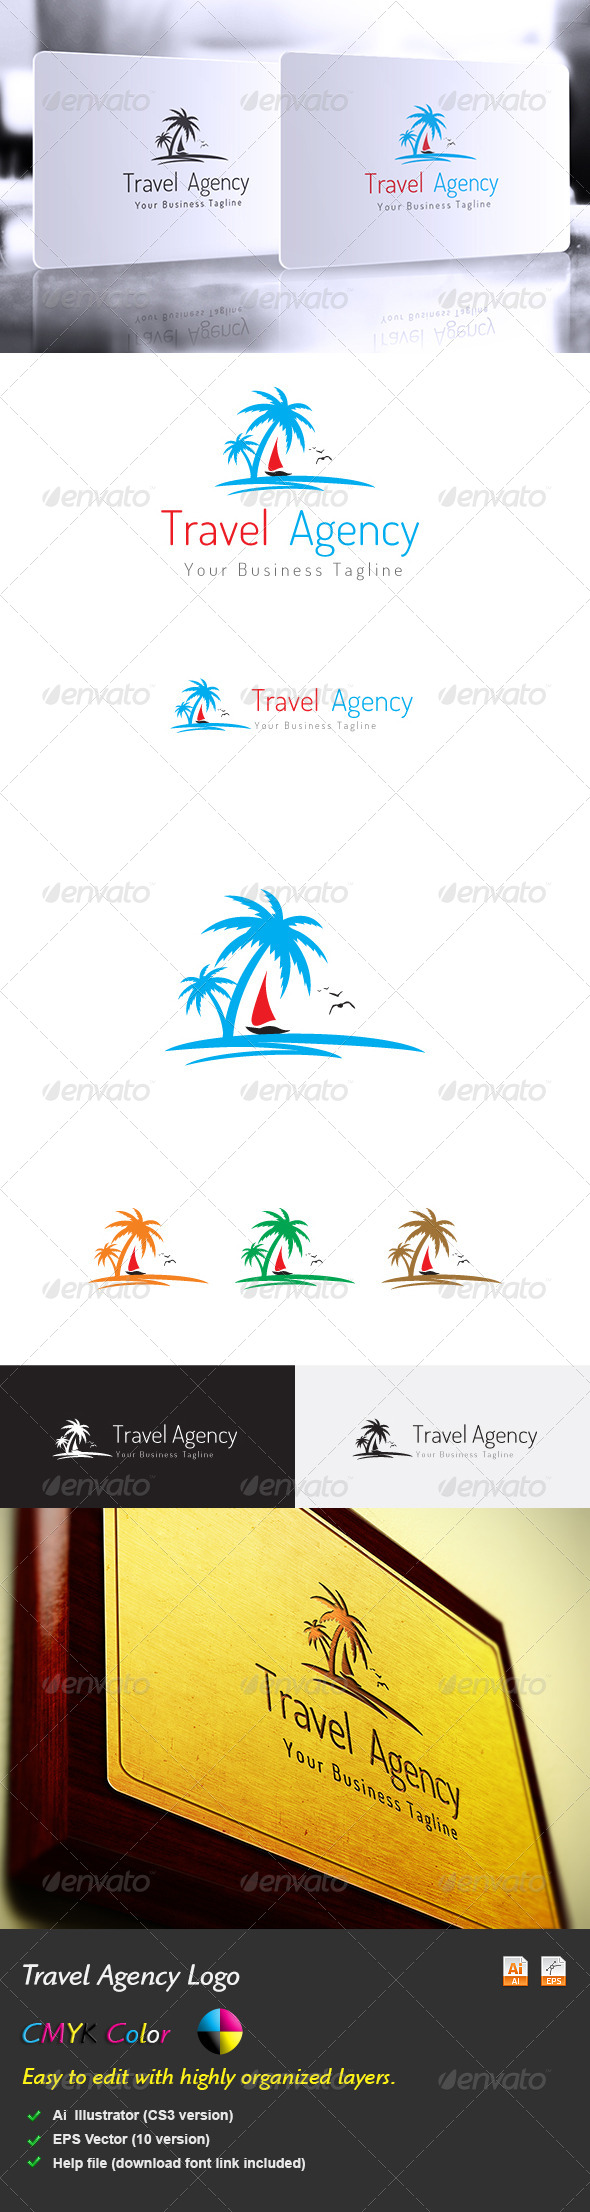 Travel Agency Logo is a designed for any types of Holiday or Tours companies. It is made by simple shapes although looks very professional. The file includes Multi variations of the Logo.